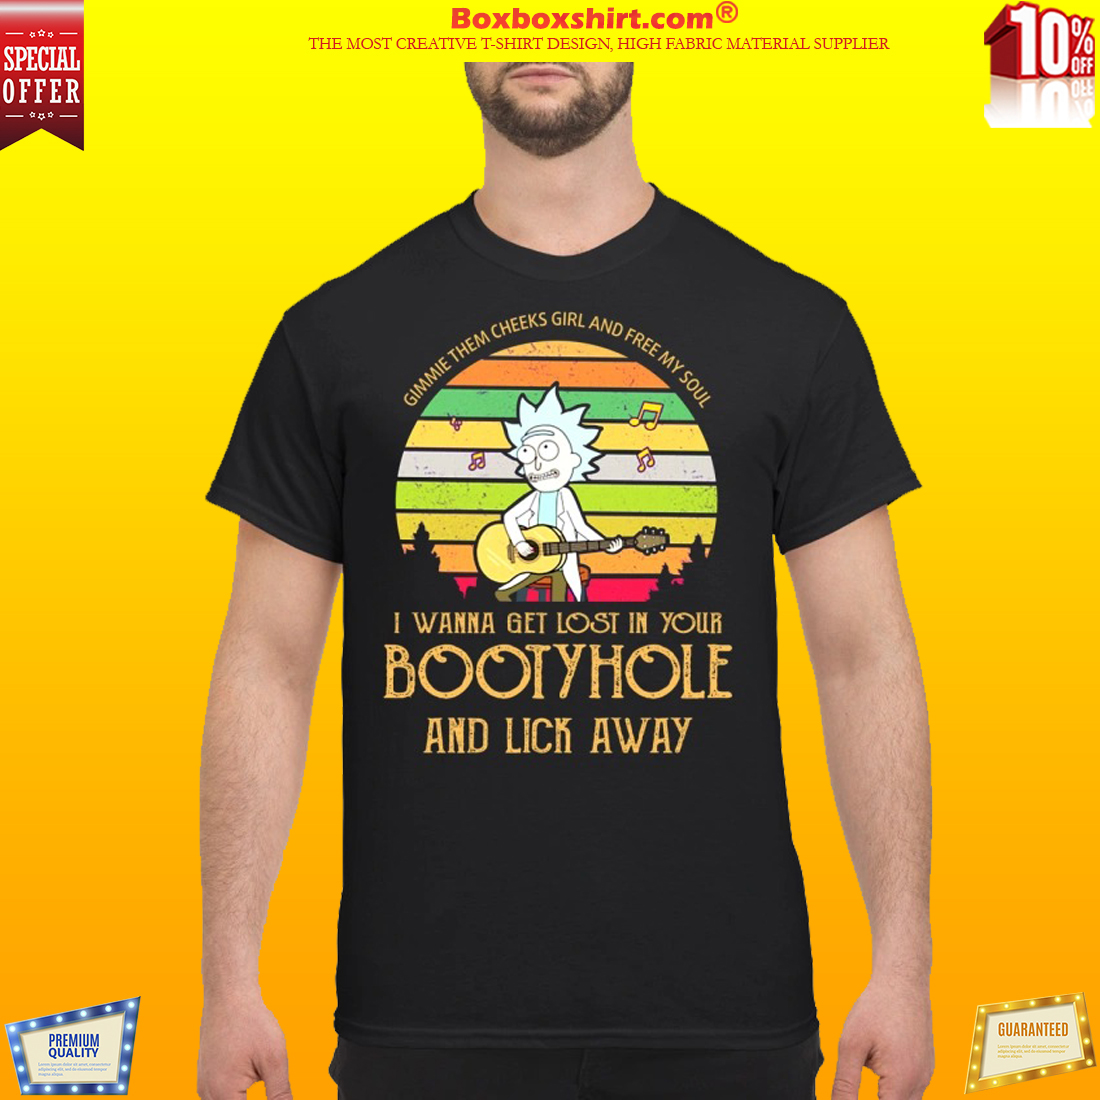 Gimme them cheeks girl and free my soul get lost in your bootyhole shirt